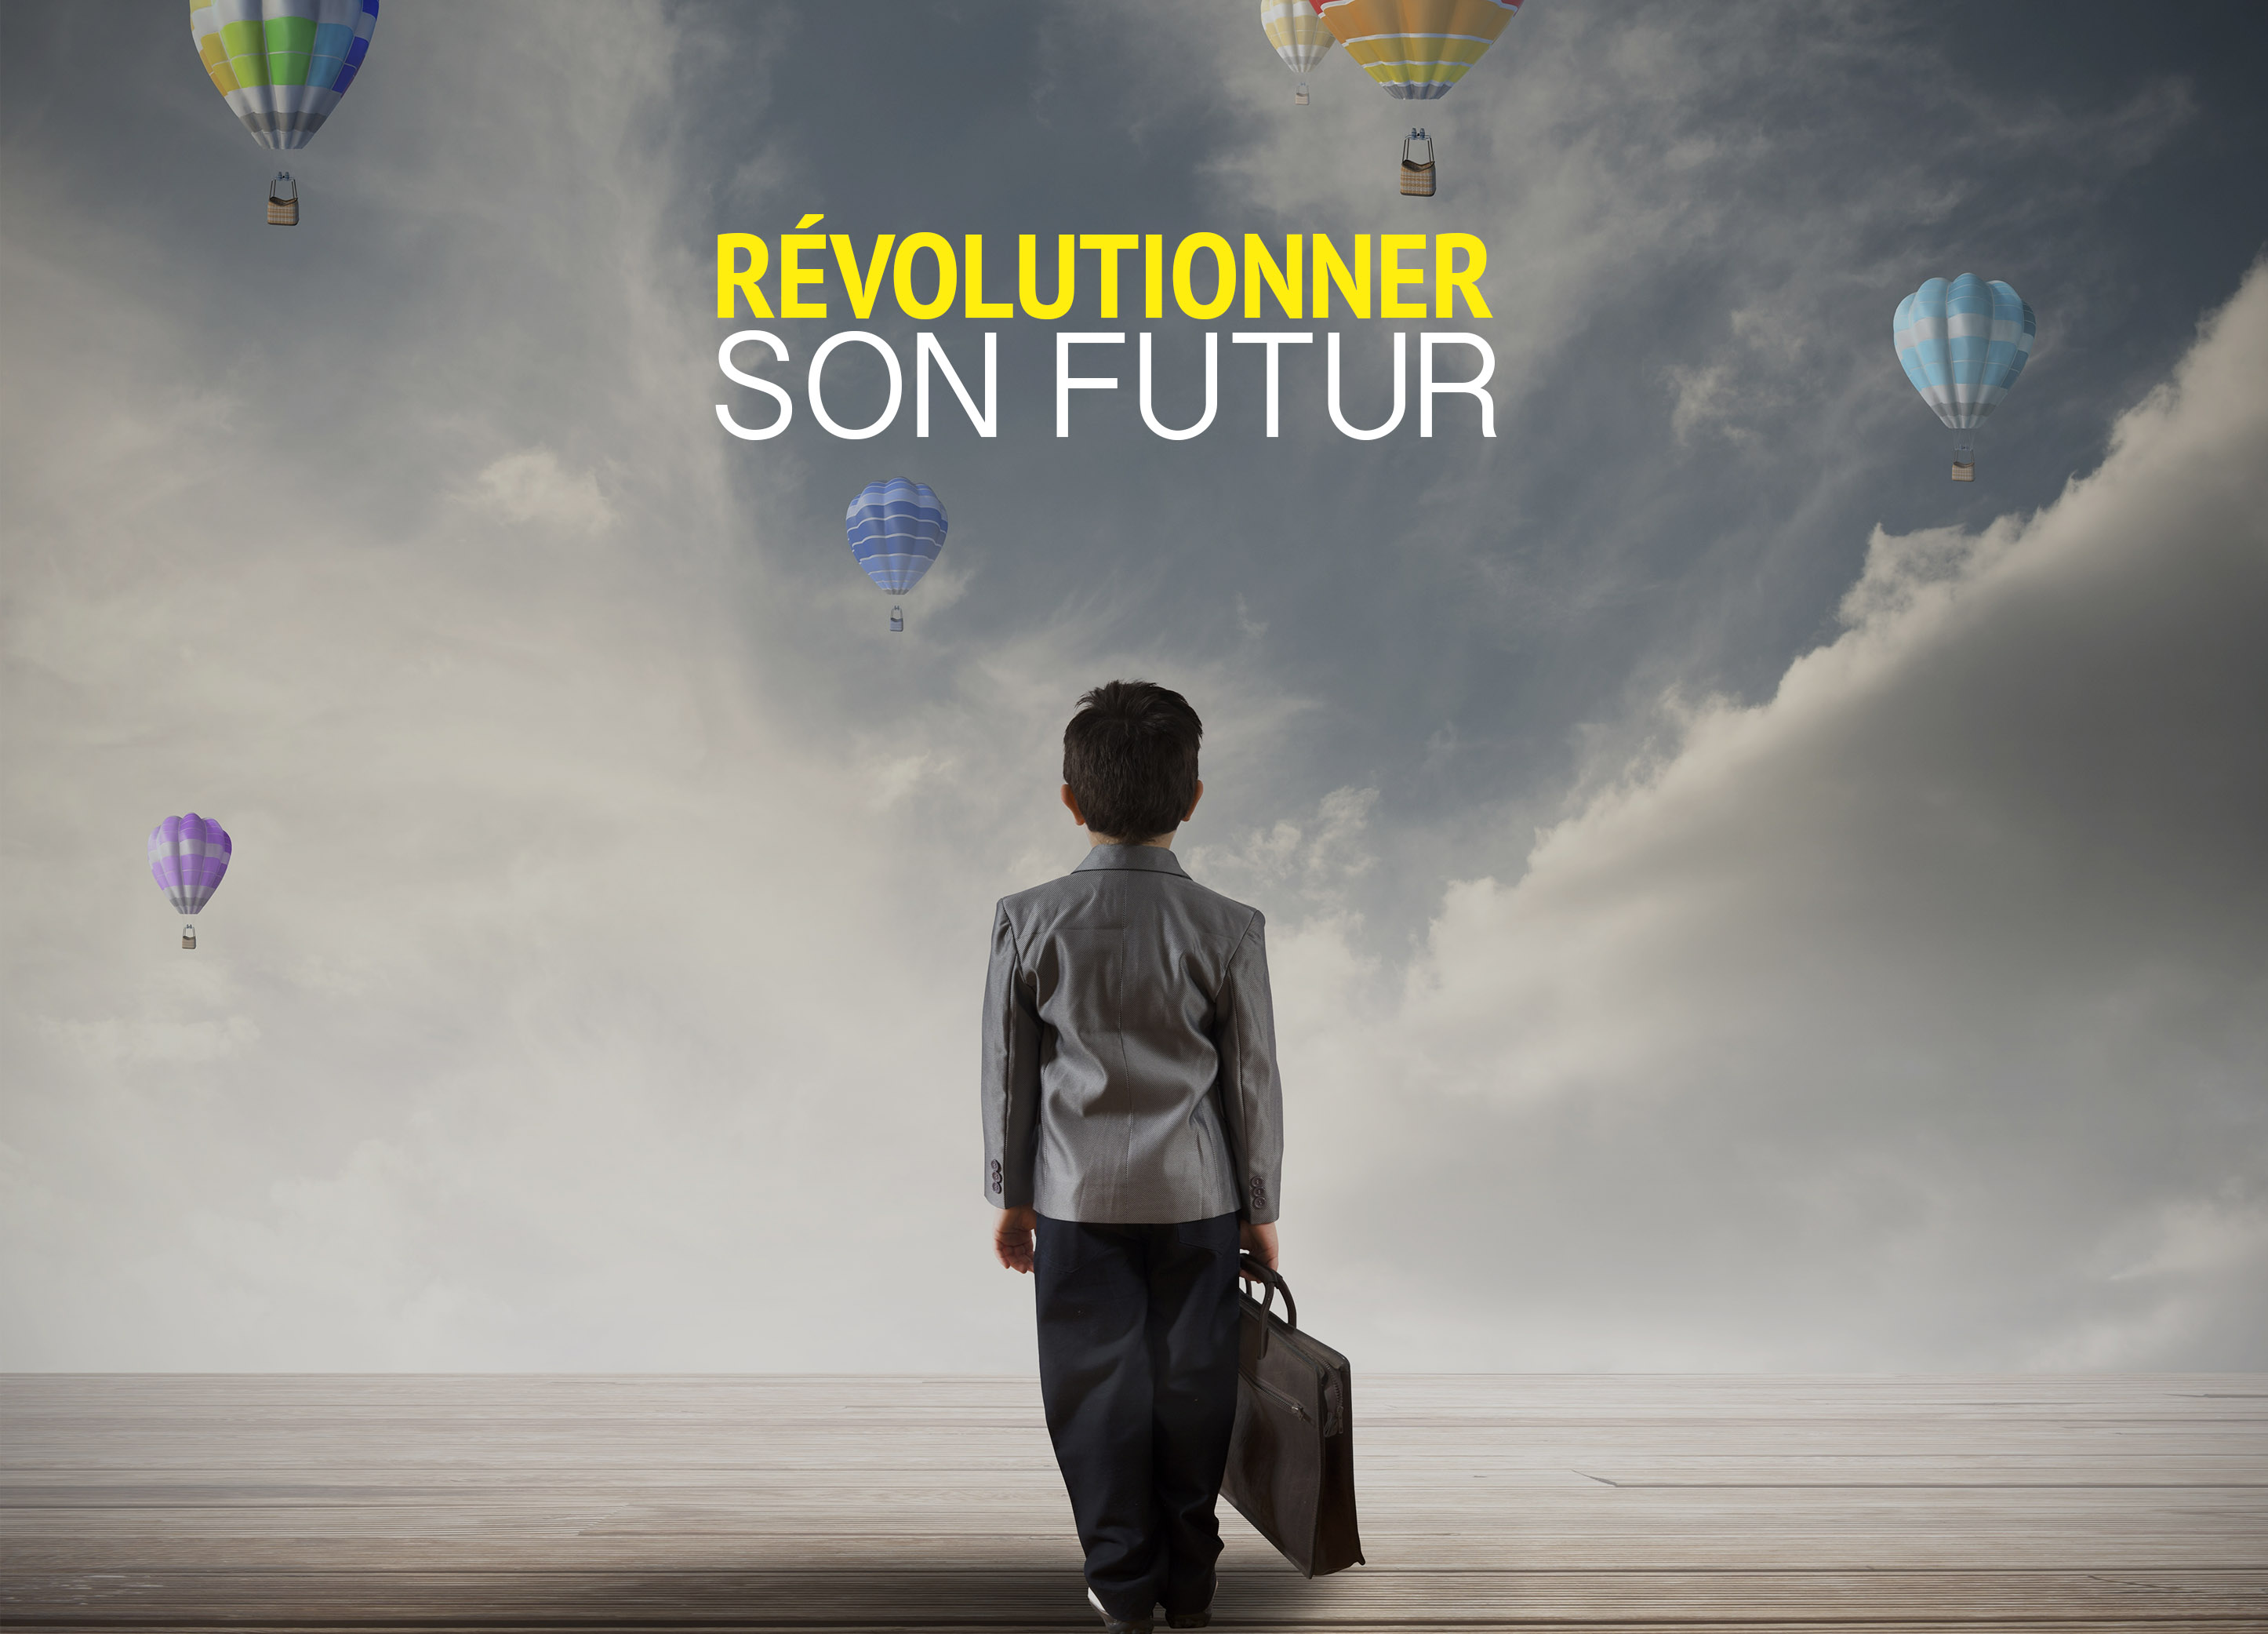 Révolutionner son futur